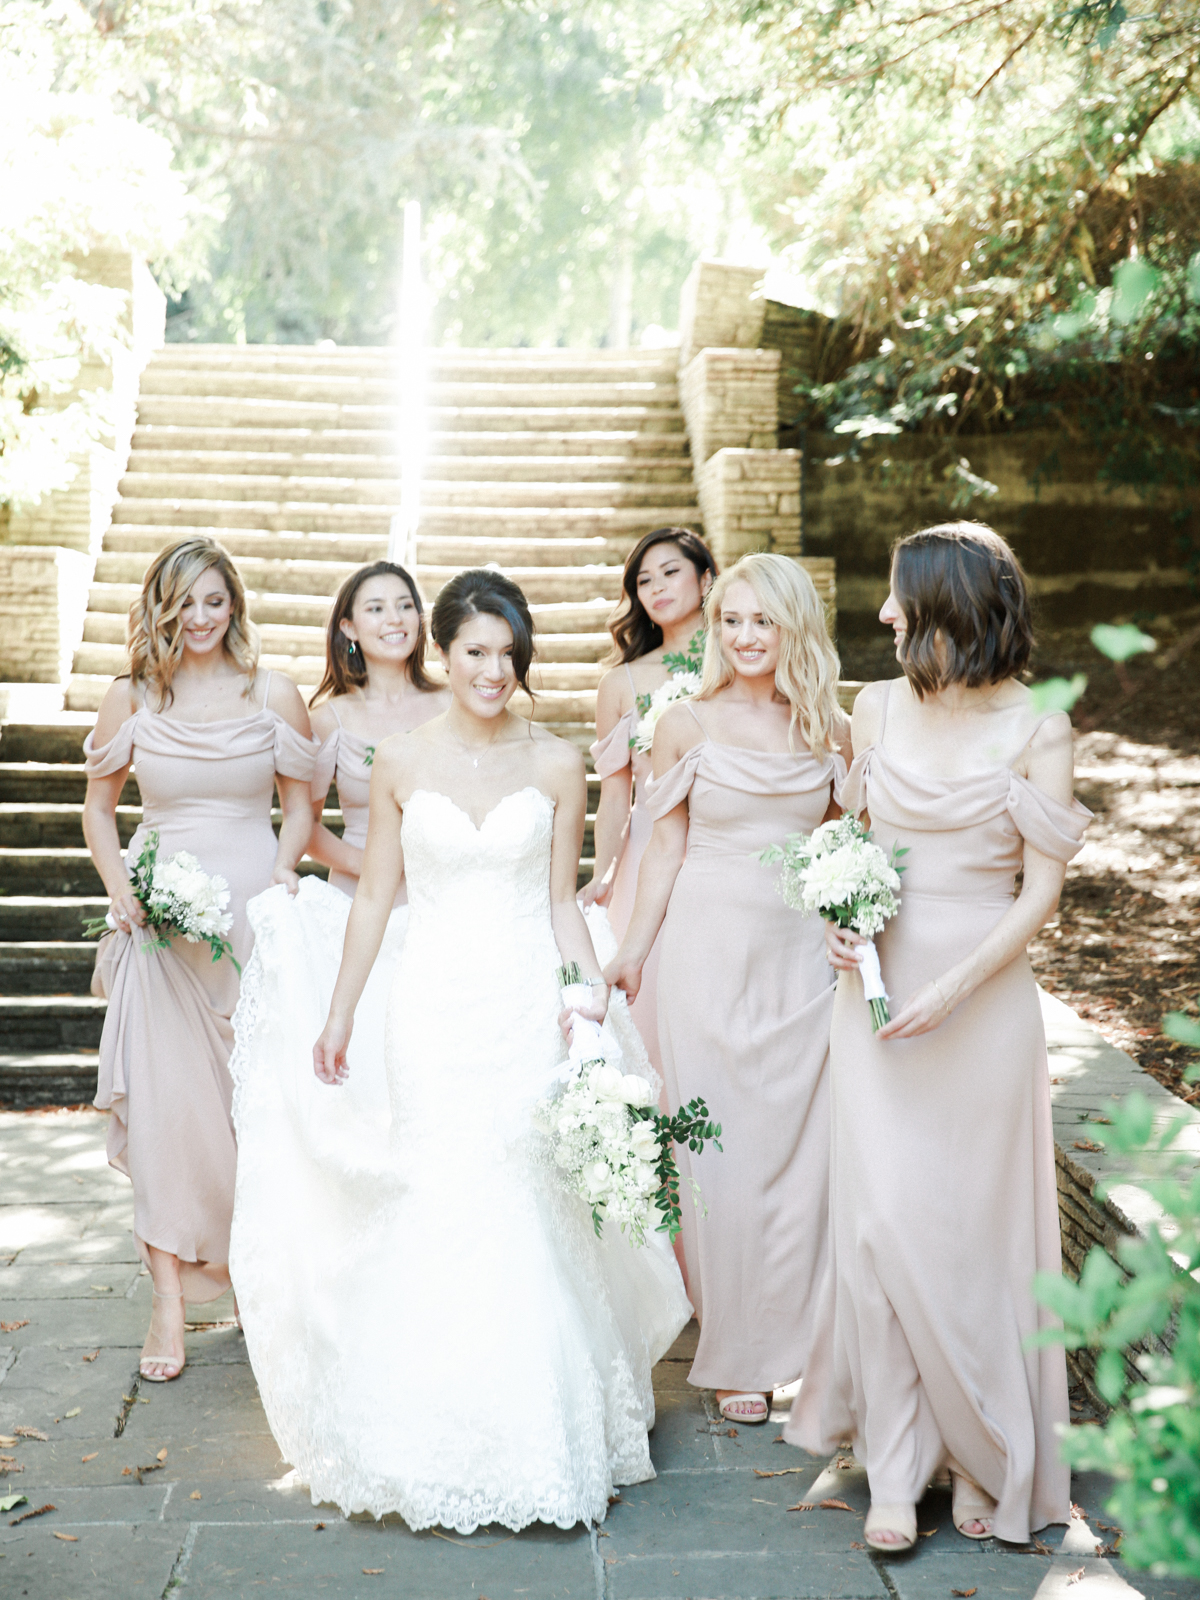 Jenny Soi Photography - SM bridal party-422.jpg